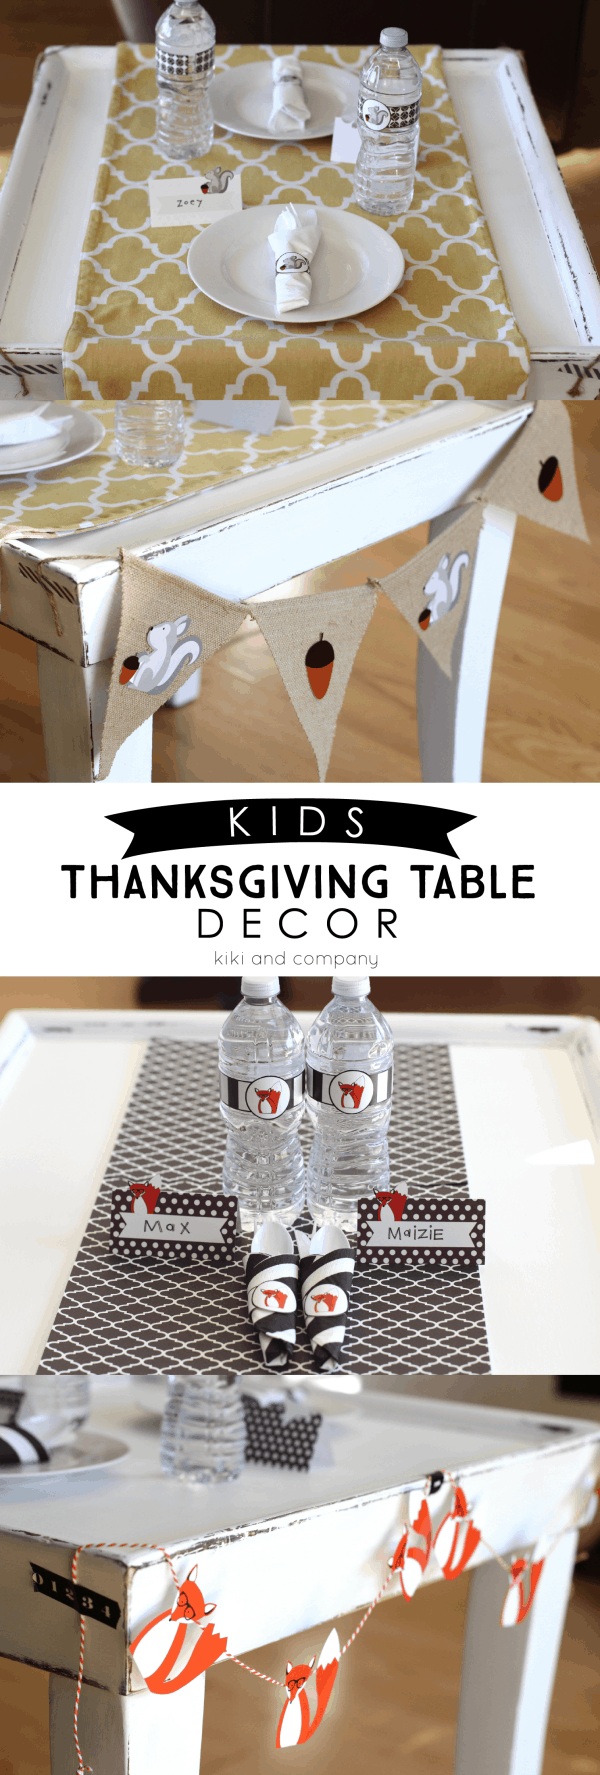 Kids' Table Printable Thanksgiving decor, the 36th avenue